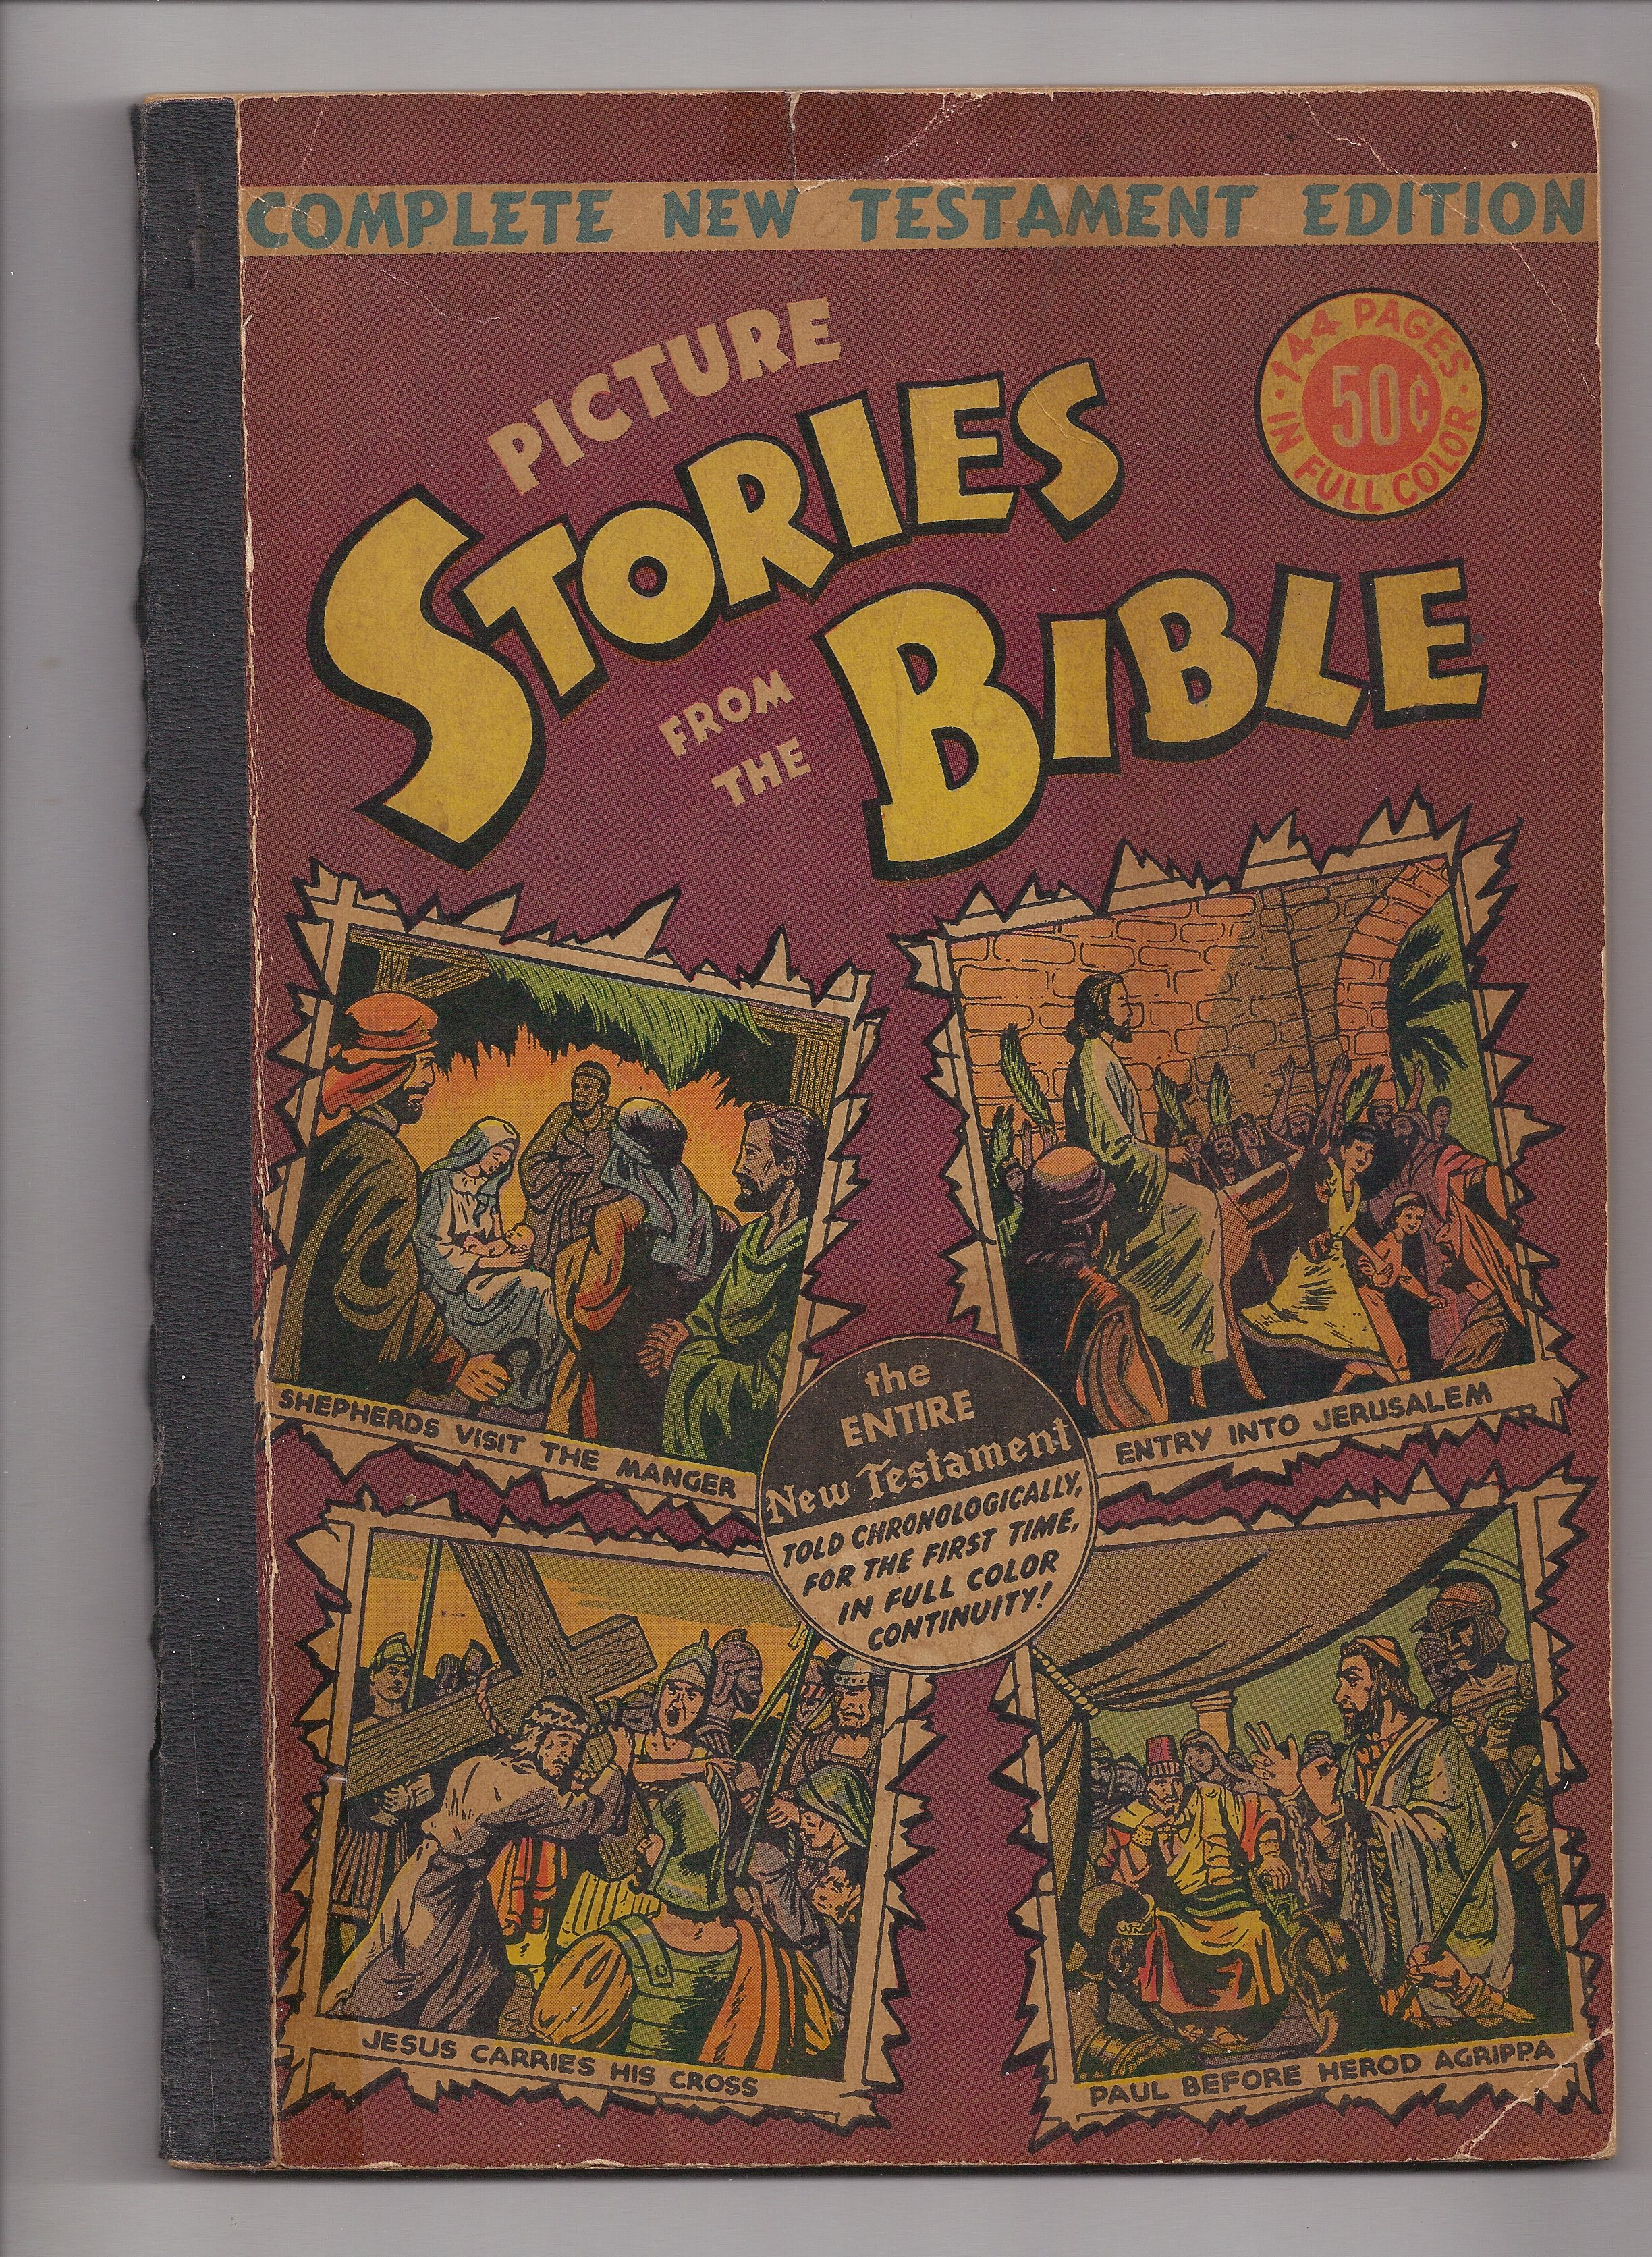 Picture stories from the bible New Testament compilation 1946